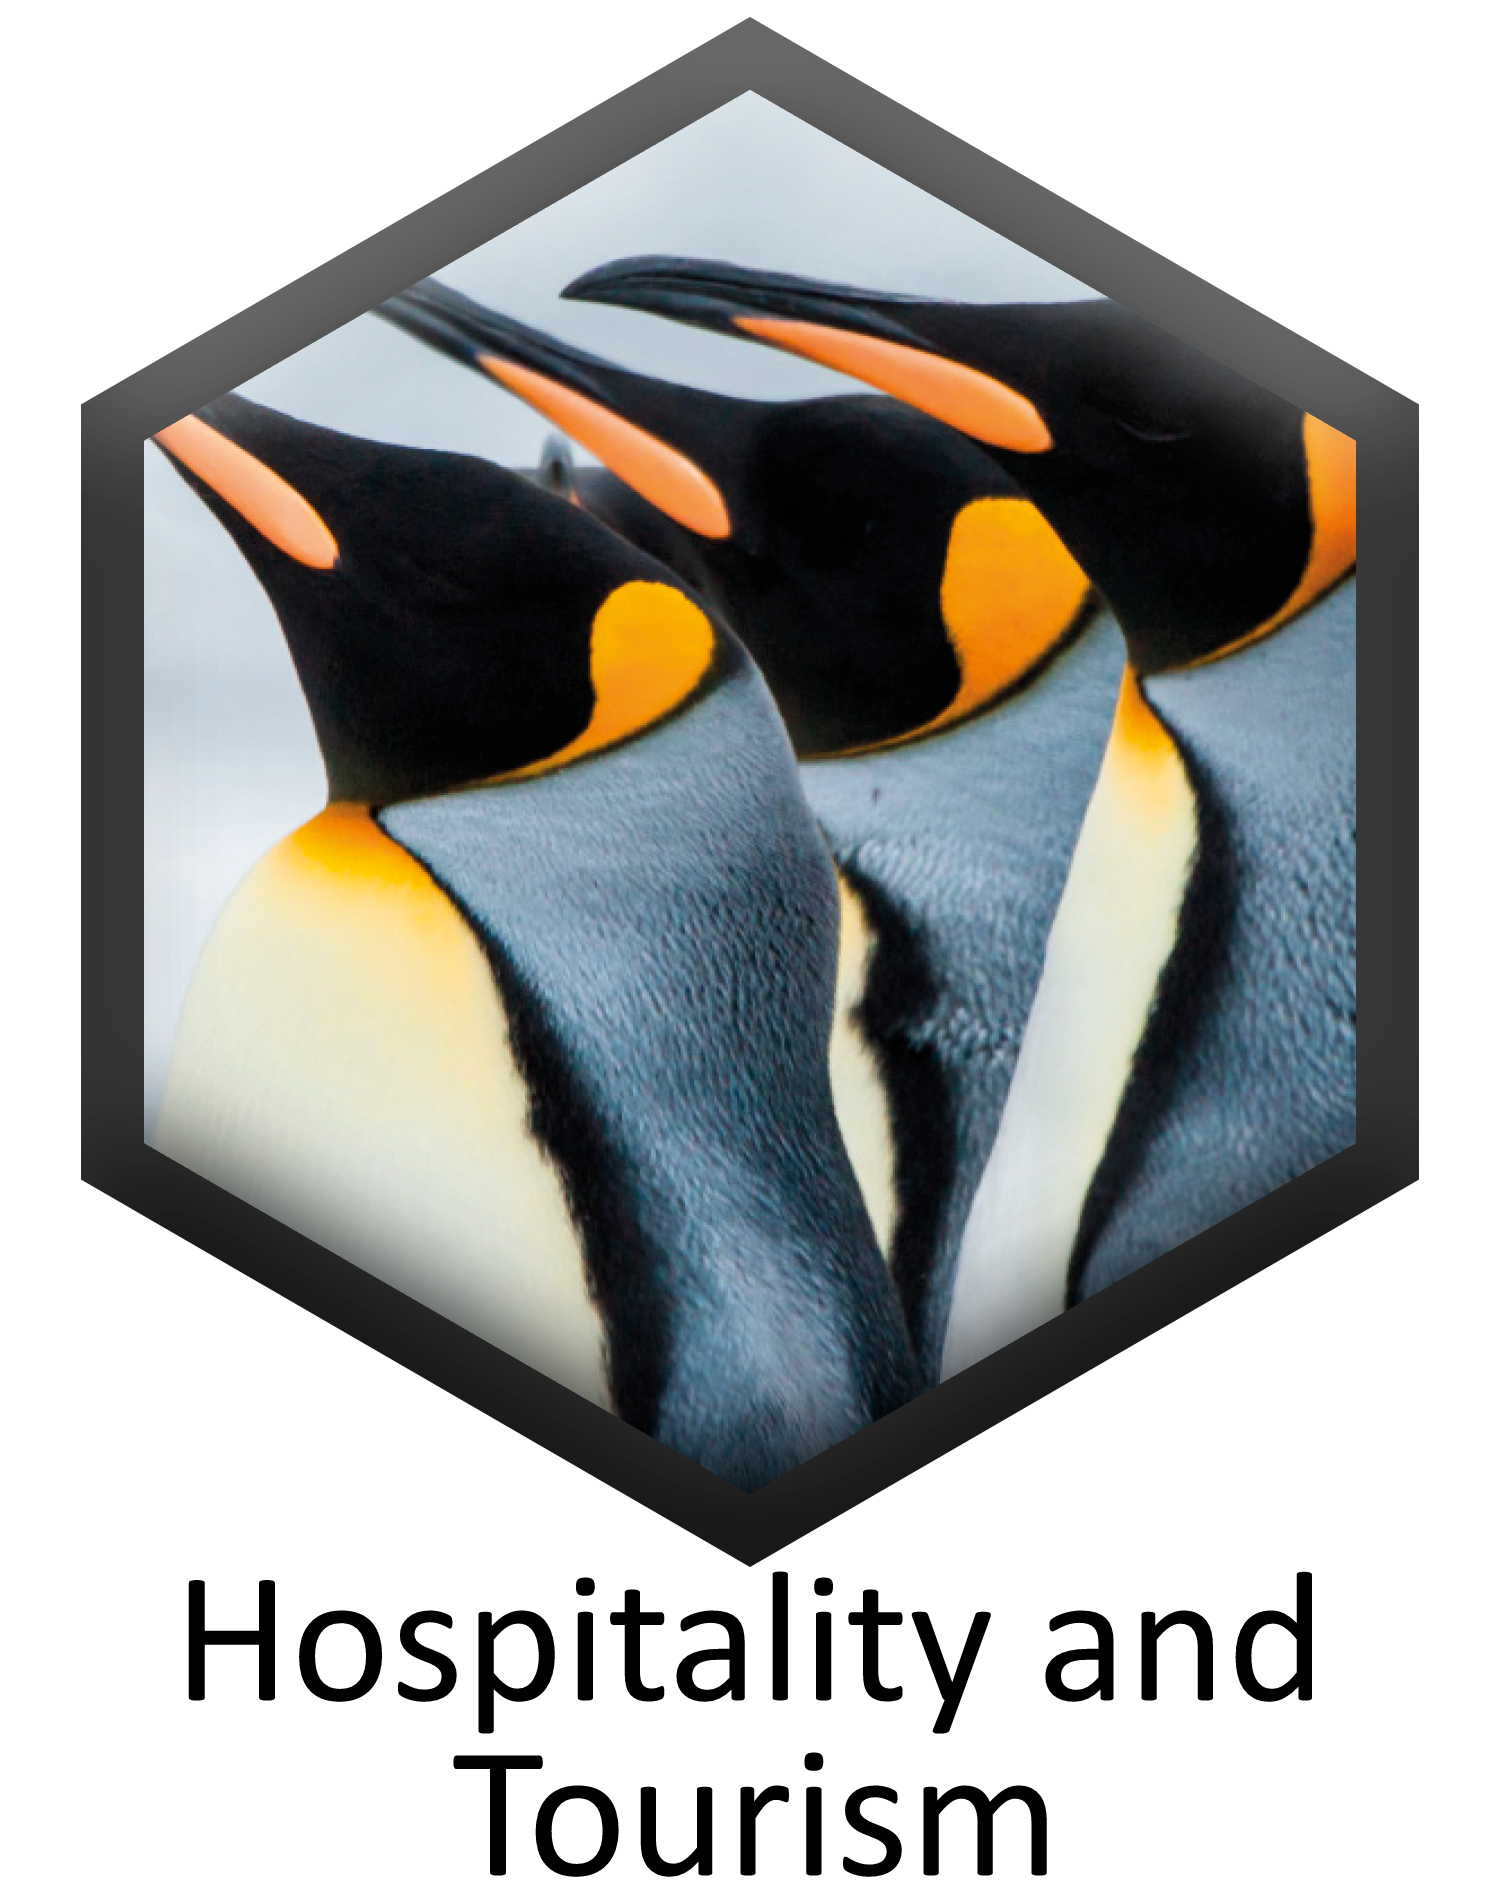 Hospitality and Tourism specification